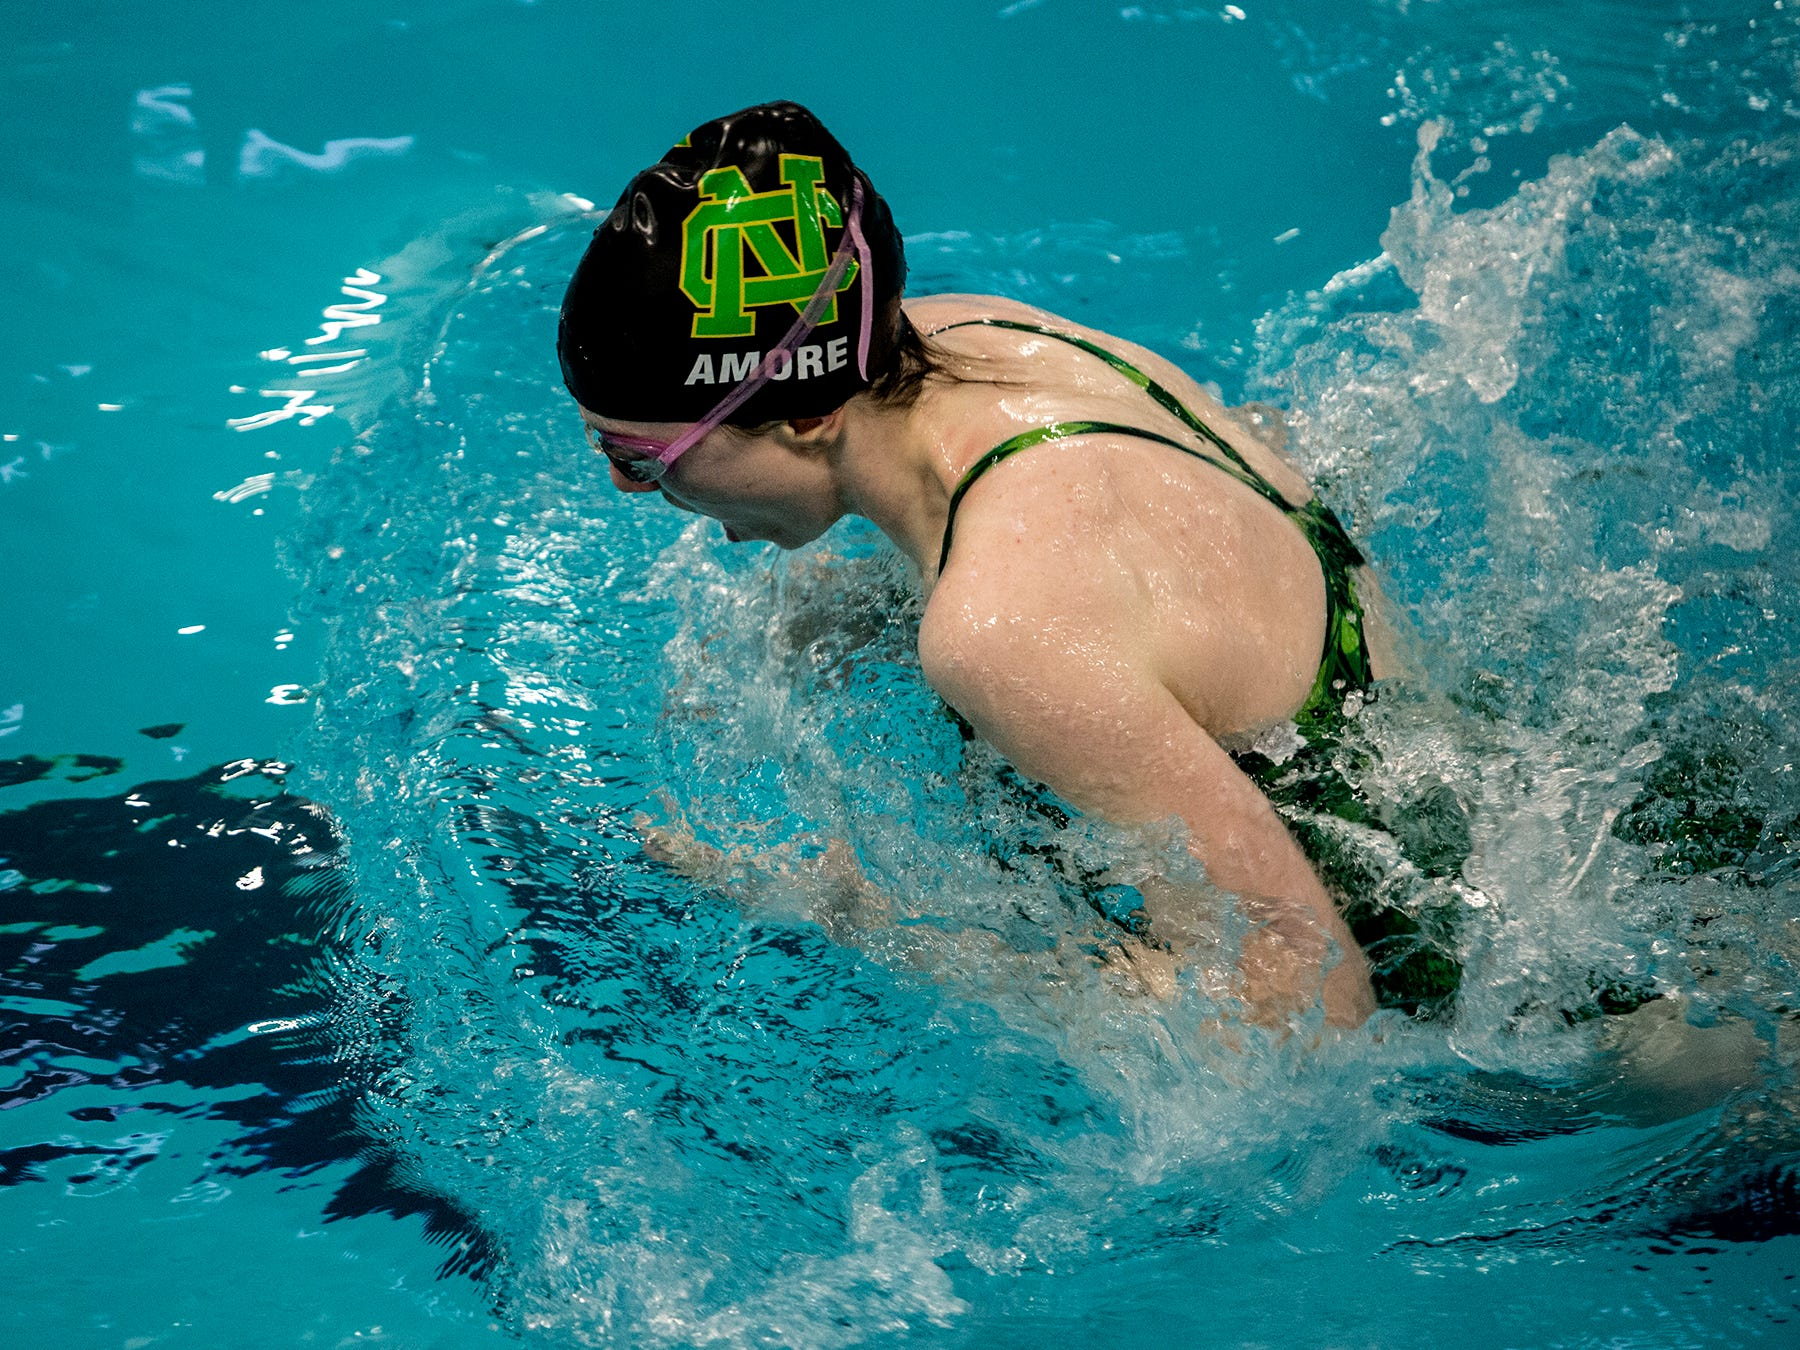 Newark Catholic's Rose Amore swims the breaststroke in the 200 medley relay Saturday during the Division II sectional meet at Columbus Academy.